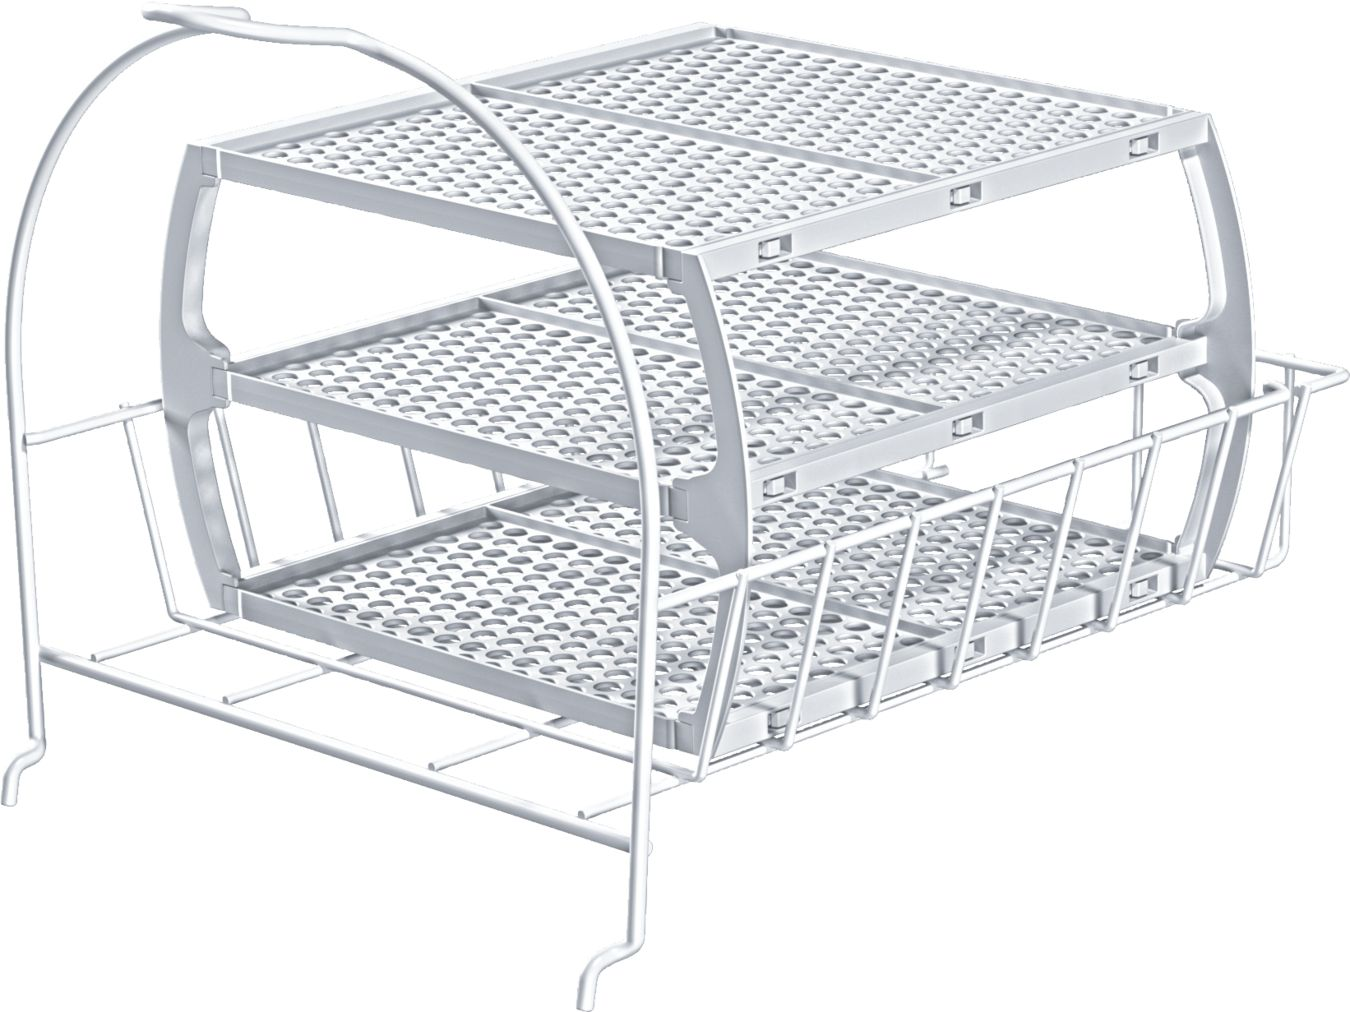 Accessories Laundry CareDrying Rack for 24